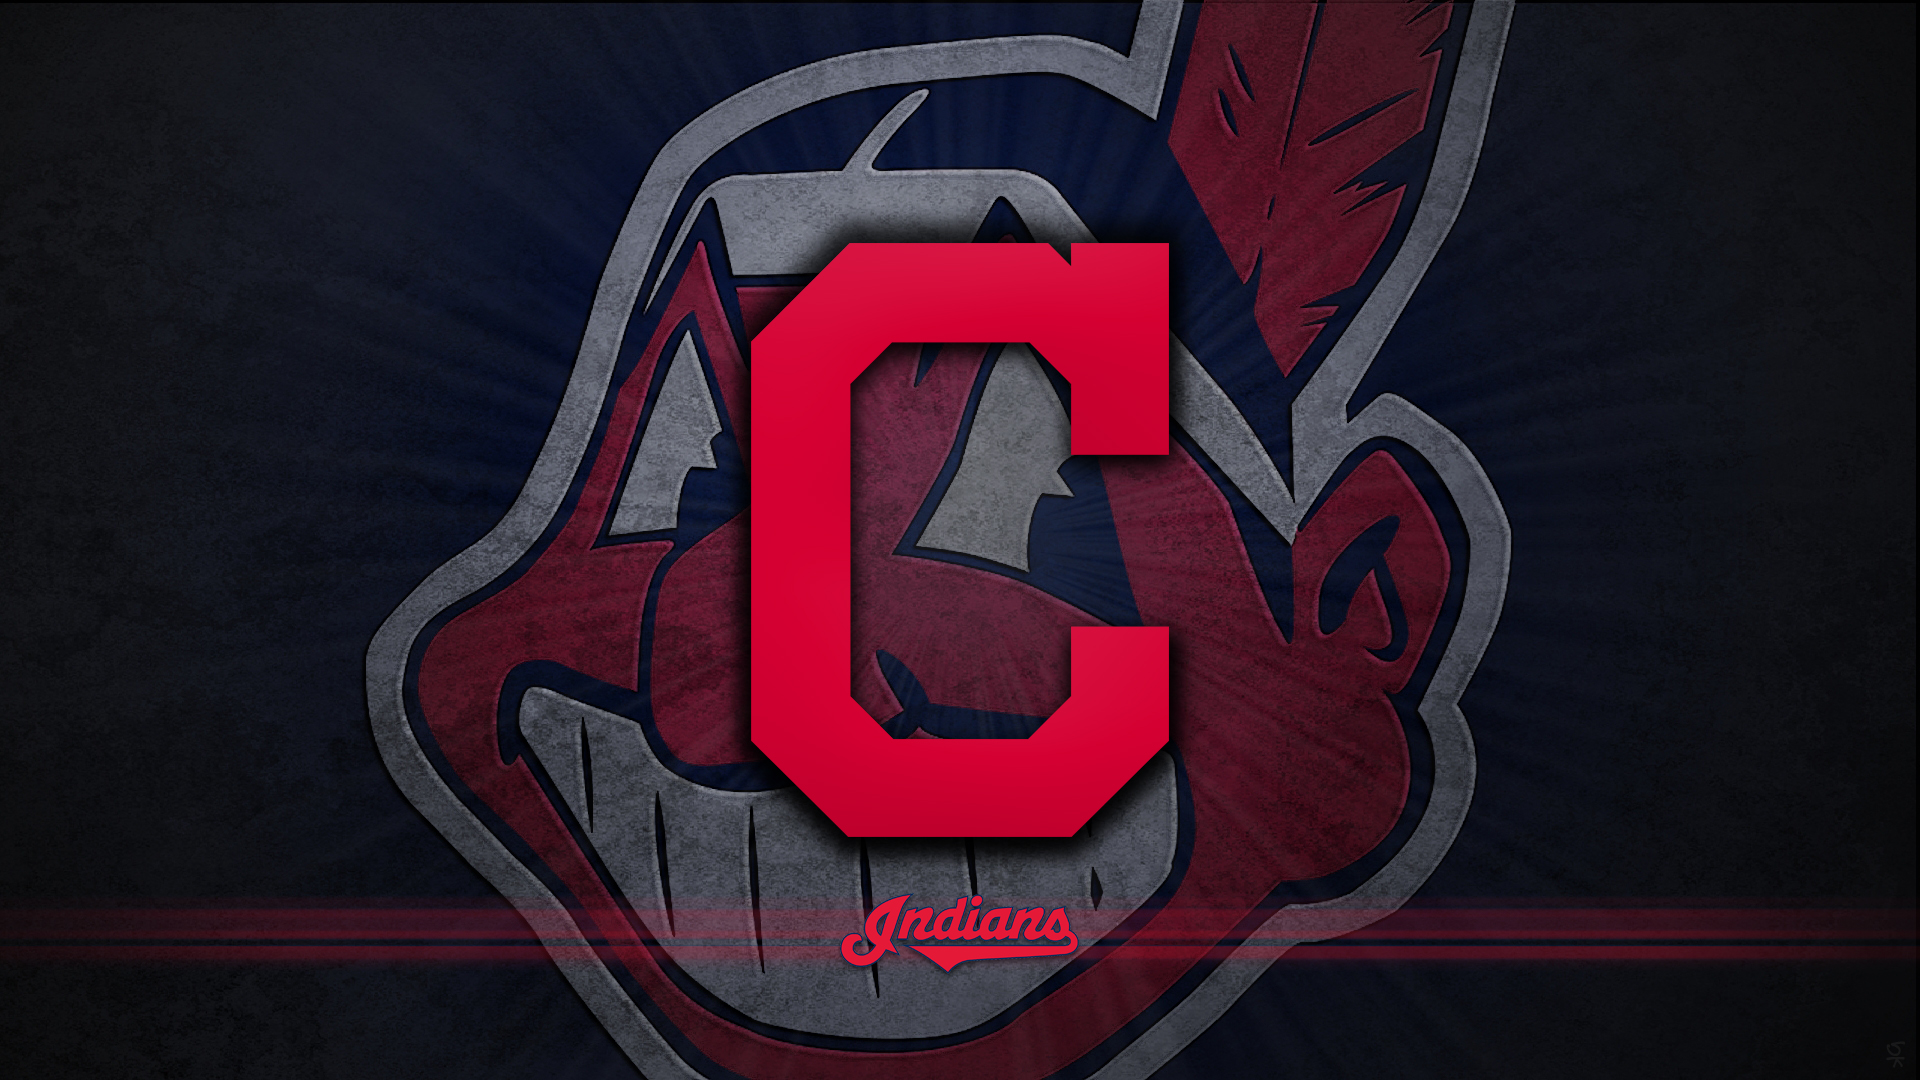 Iphone iphone 6 sports wallpaper thread page 138 macrumors cleveland indiansg biocorpaavc Choice Image